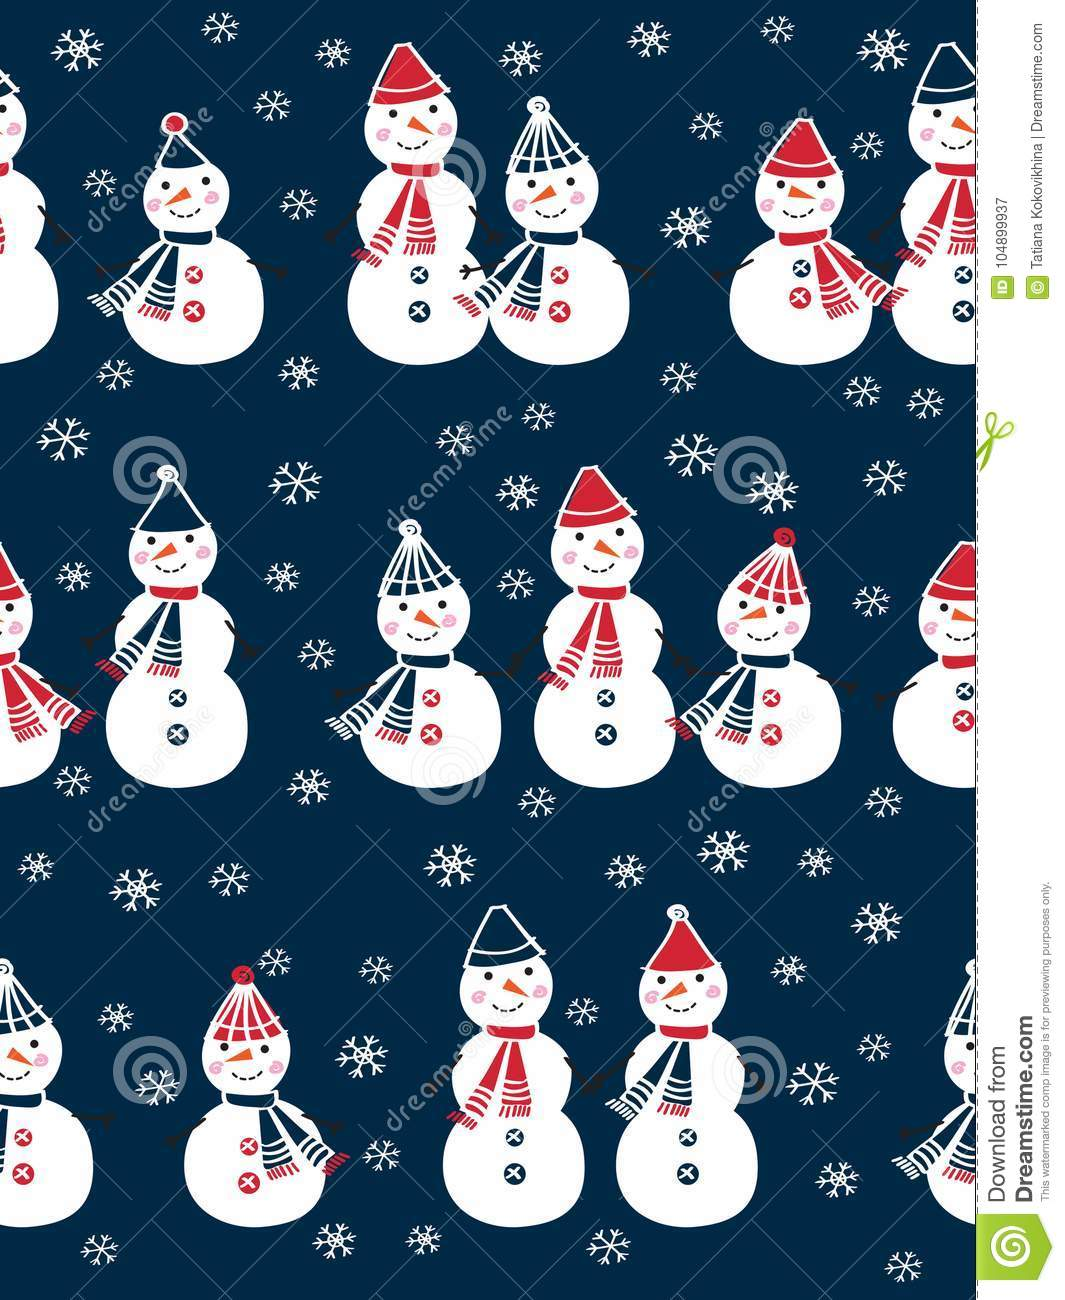 christmas seamless pattern with cute snowmen and snowflakes for gift wrap textile wallpapers and scrapbook happy new year 2018 doodles sketch for your